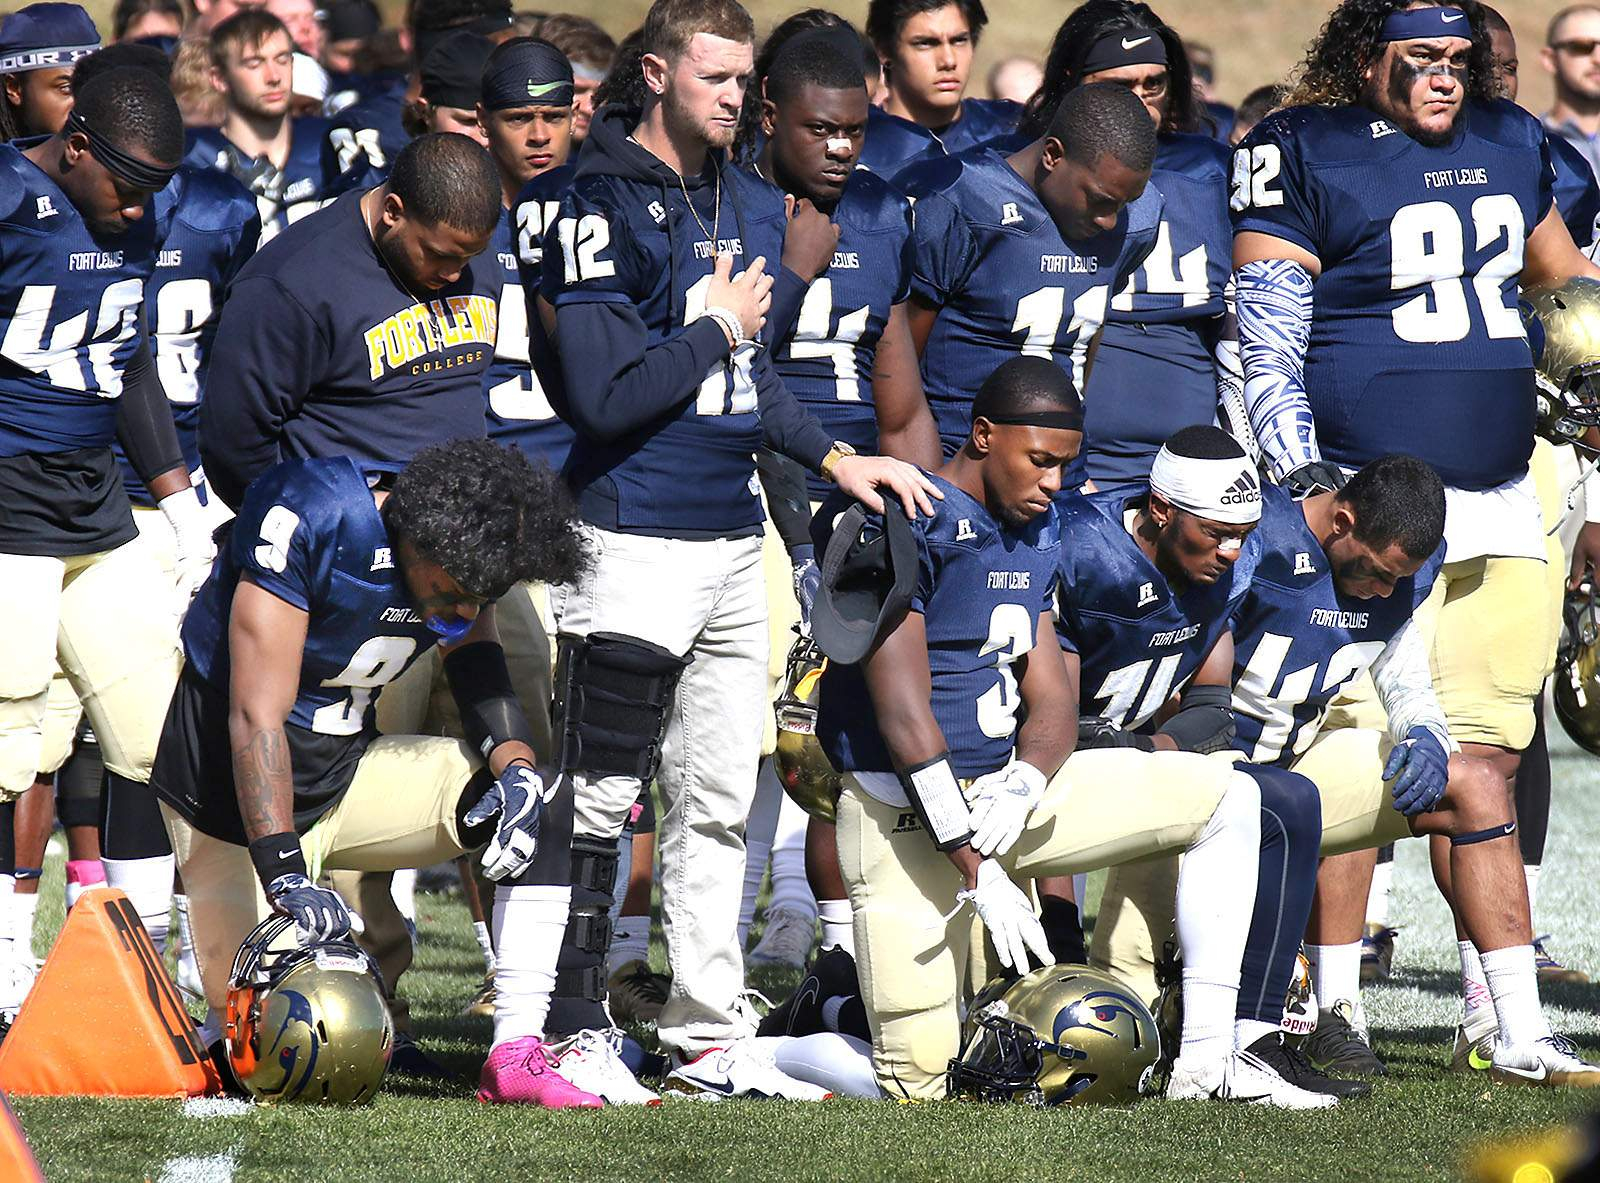 Four Fort Lewis College football players kneel during ...